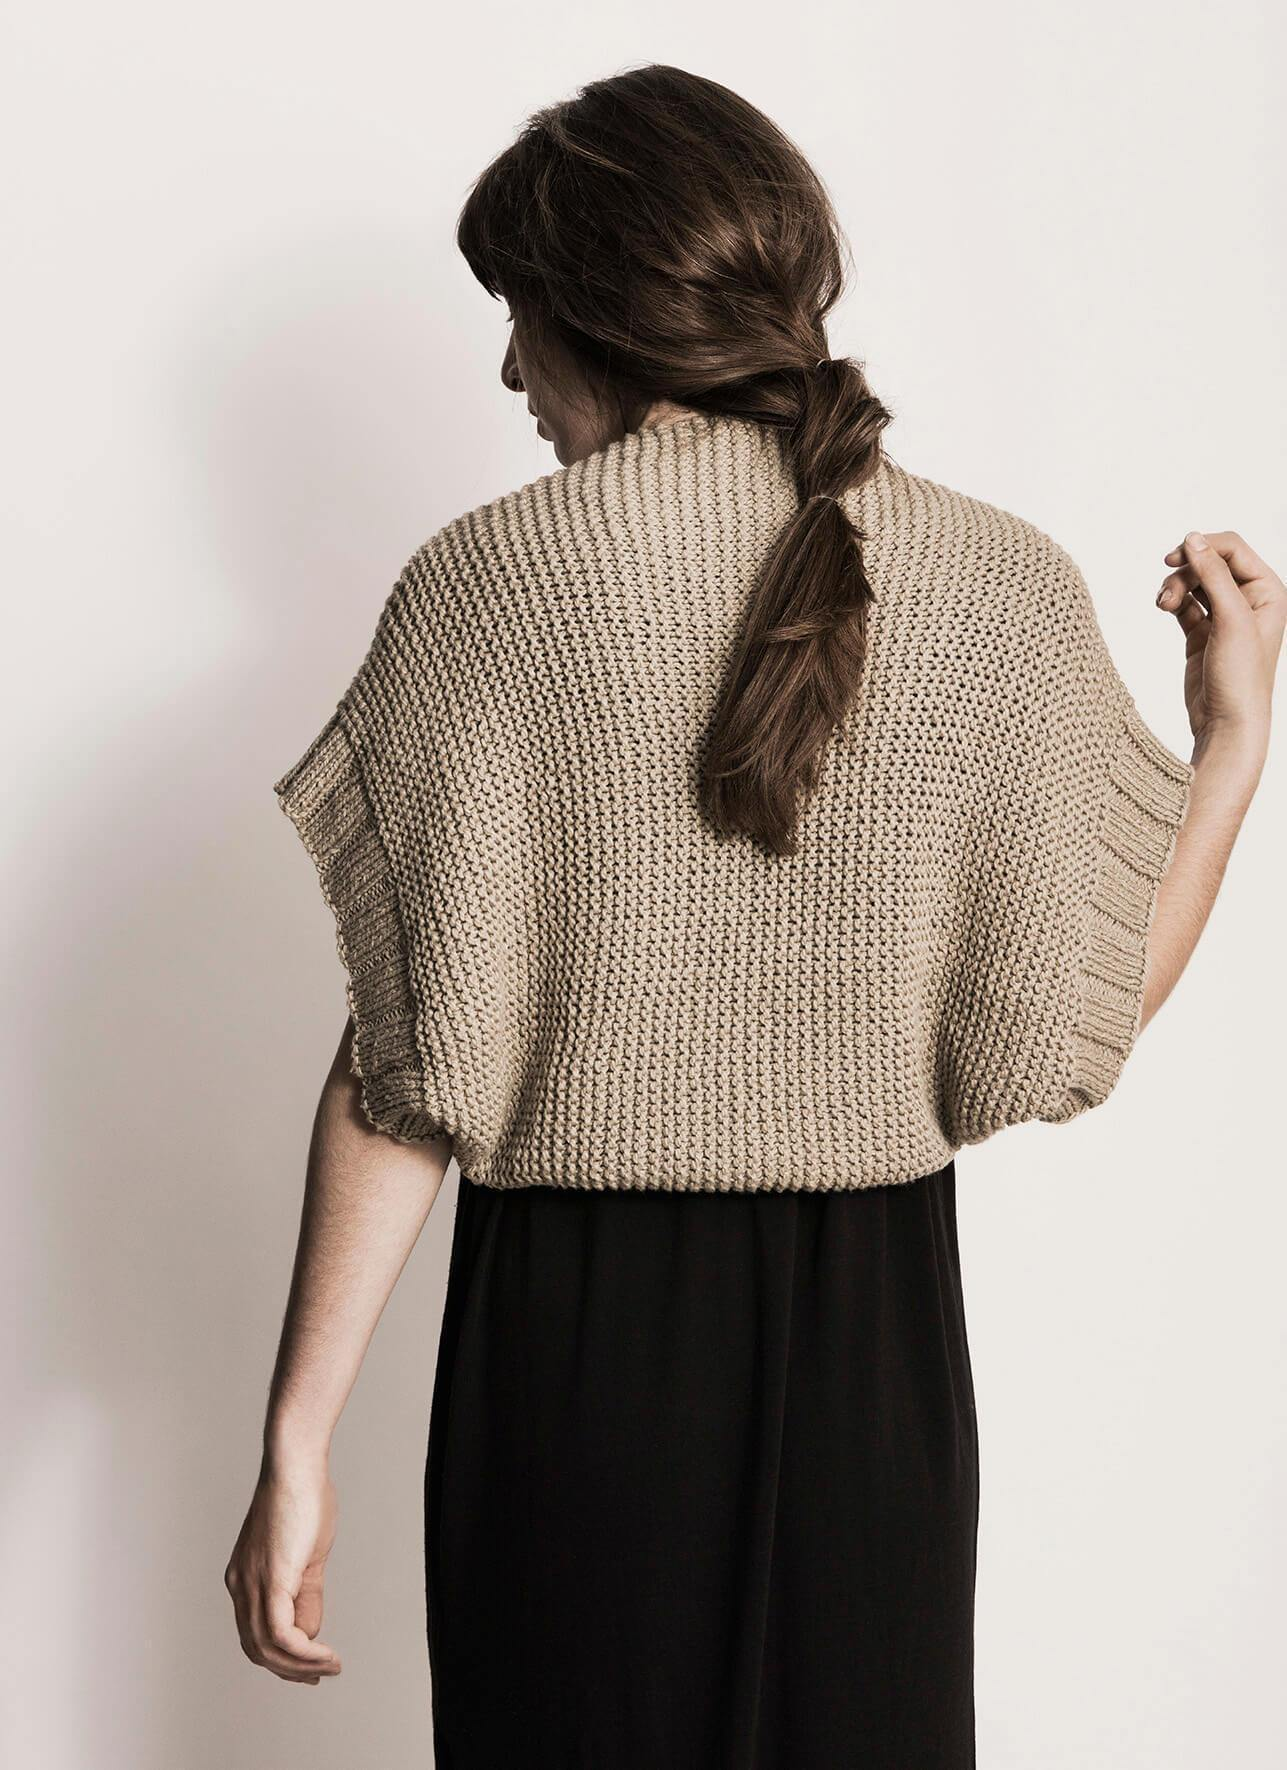 Inspirational Collection of Knitting Patterns | Tribe Yarns, London